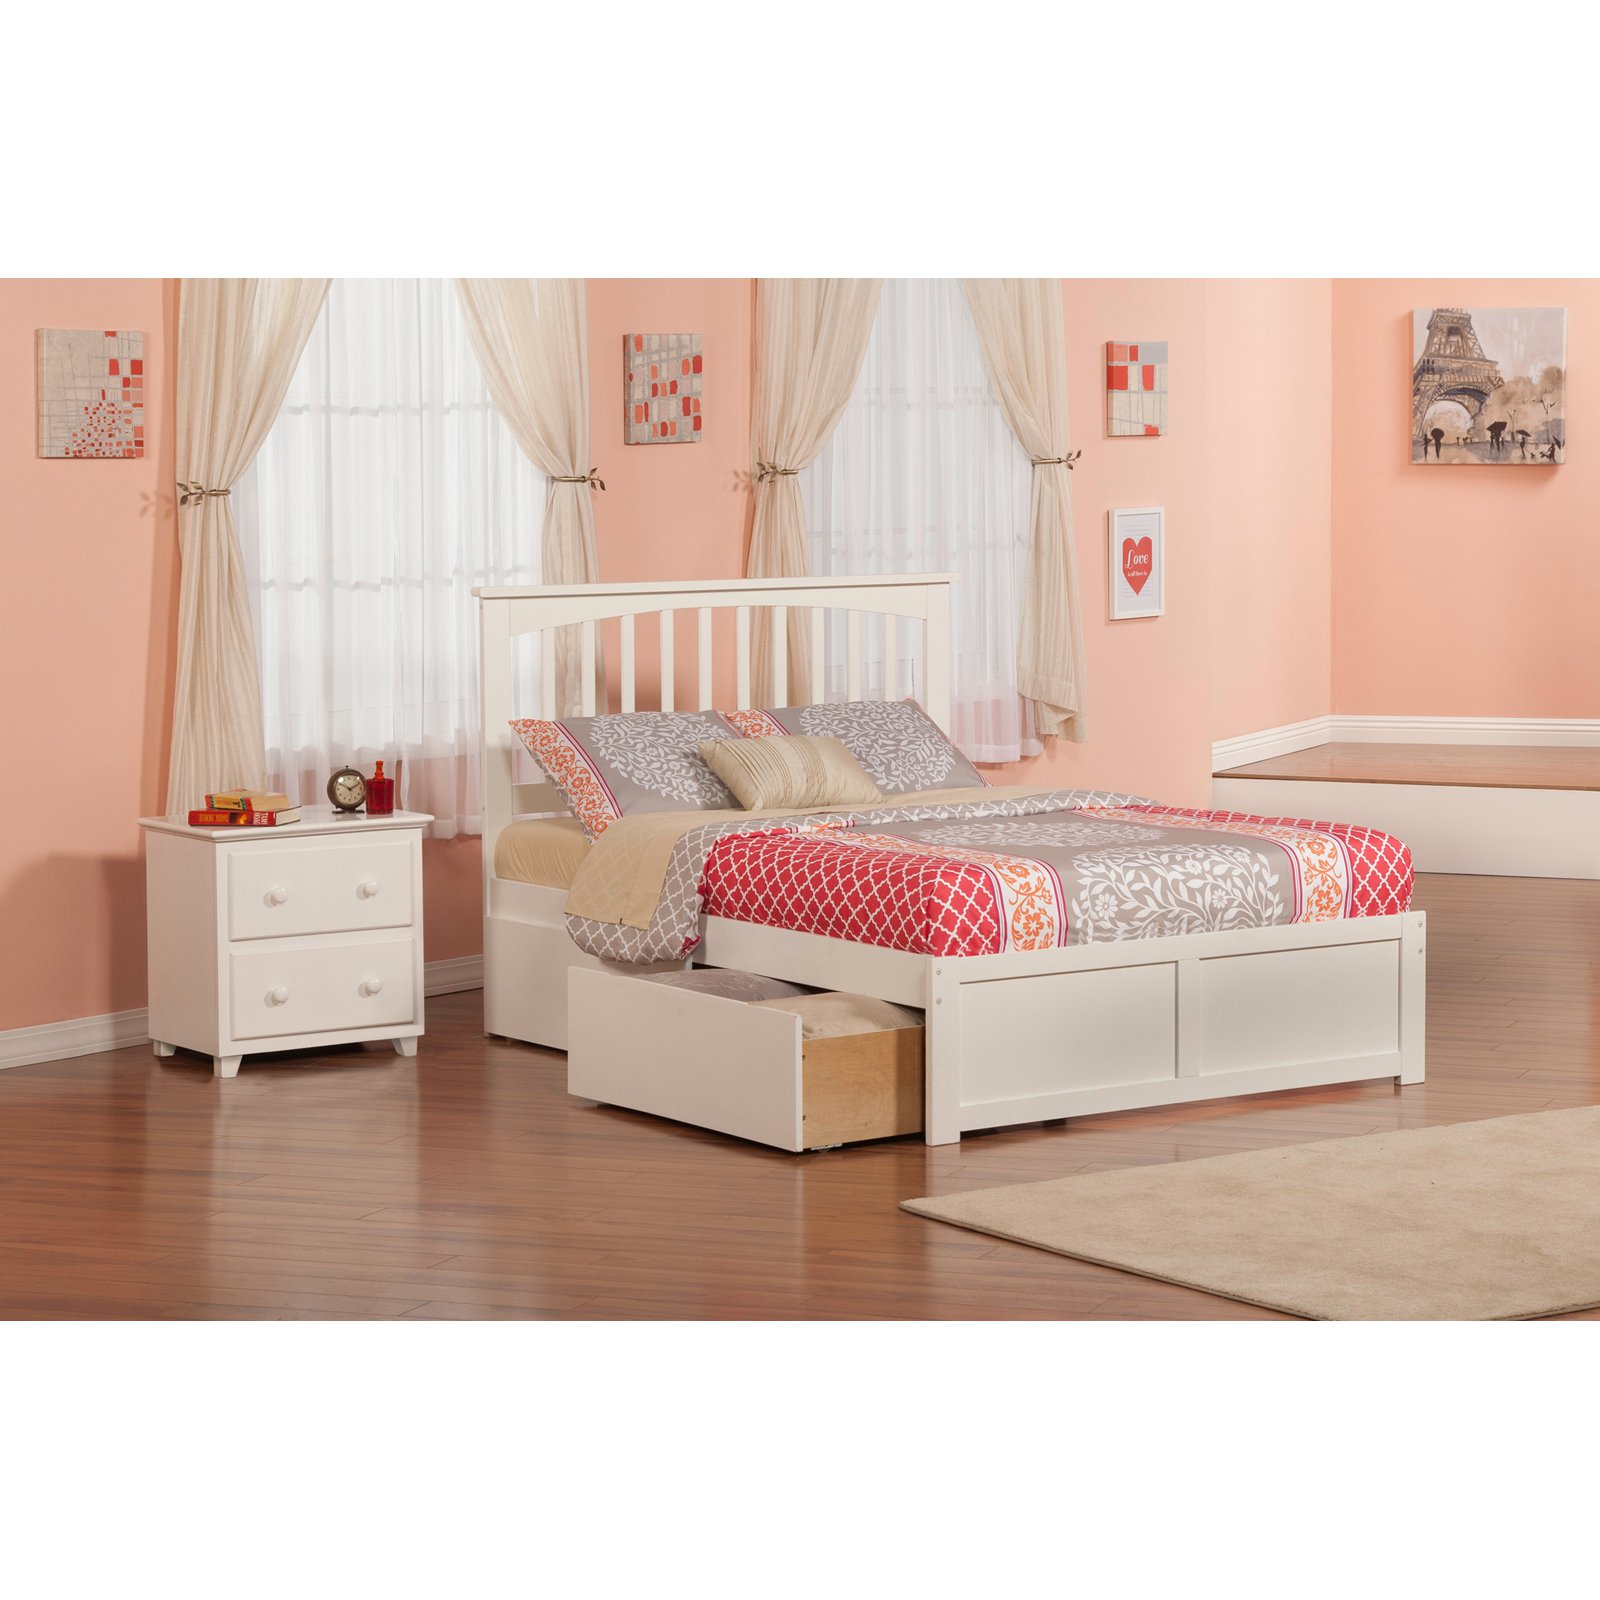 Atlantic Furniture Mission Bedroom Set   Walmart.com